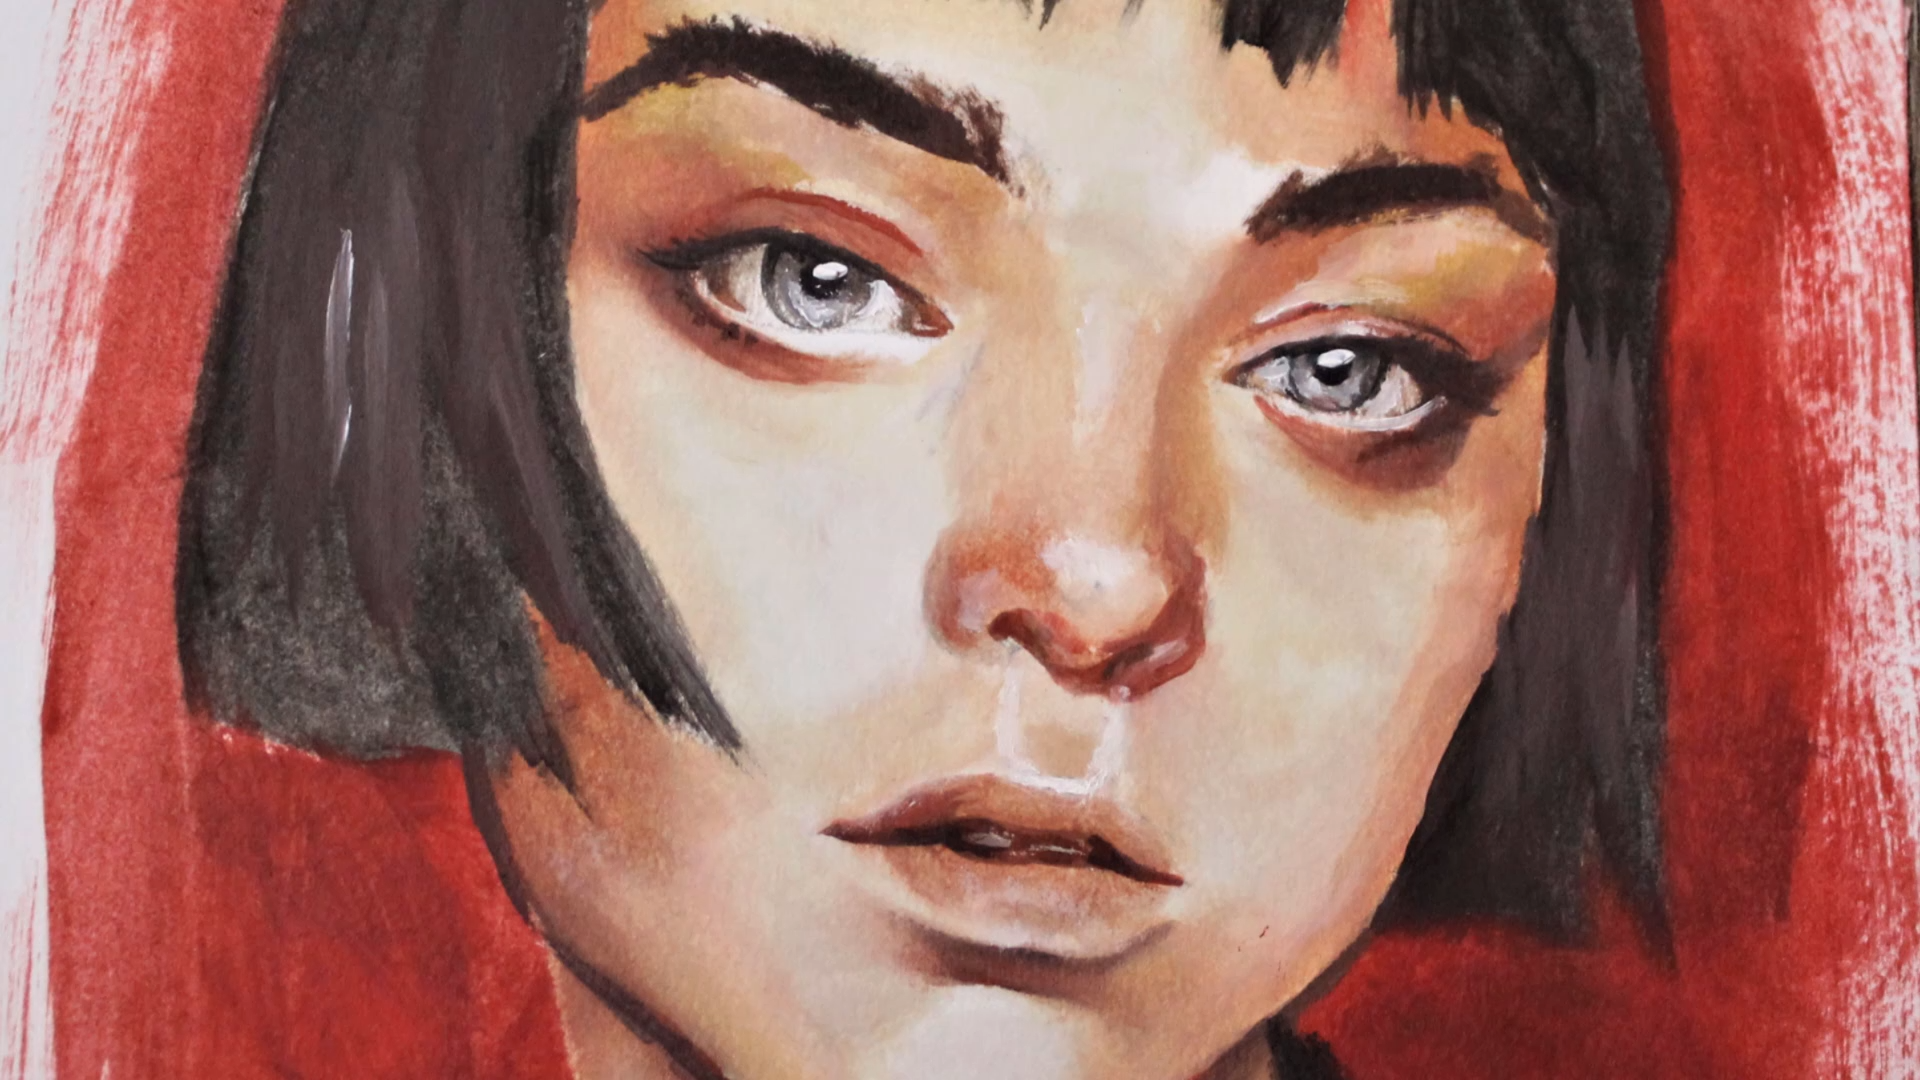 oil painting portrait time lapse from start to finish! relaxing art video, satisfying art